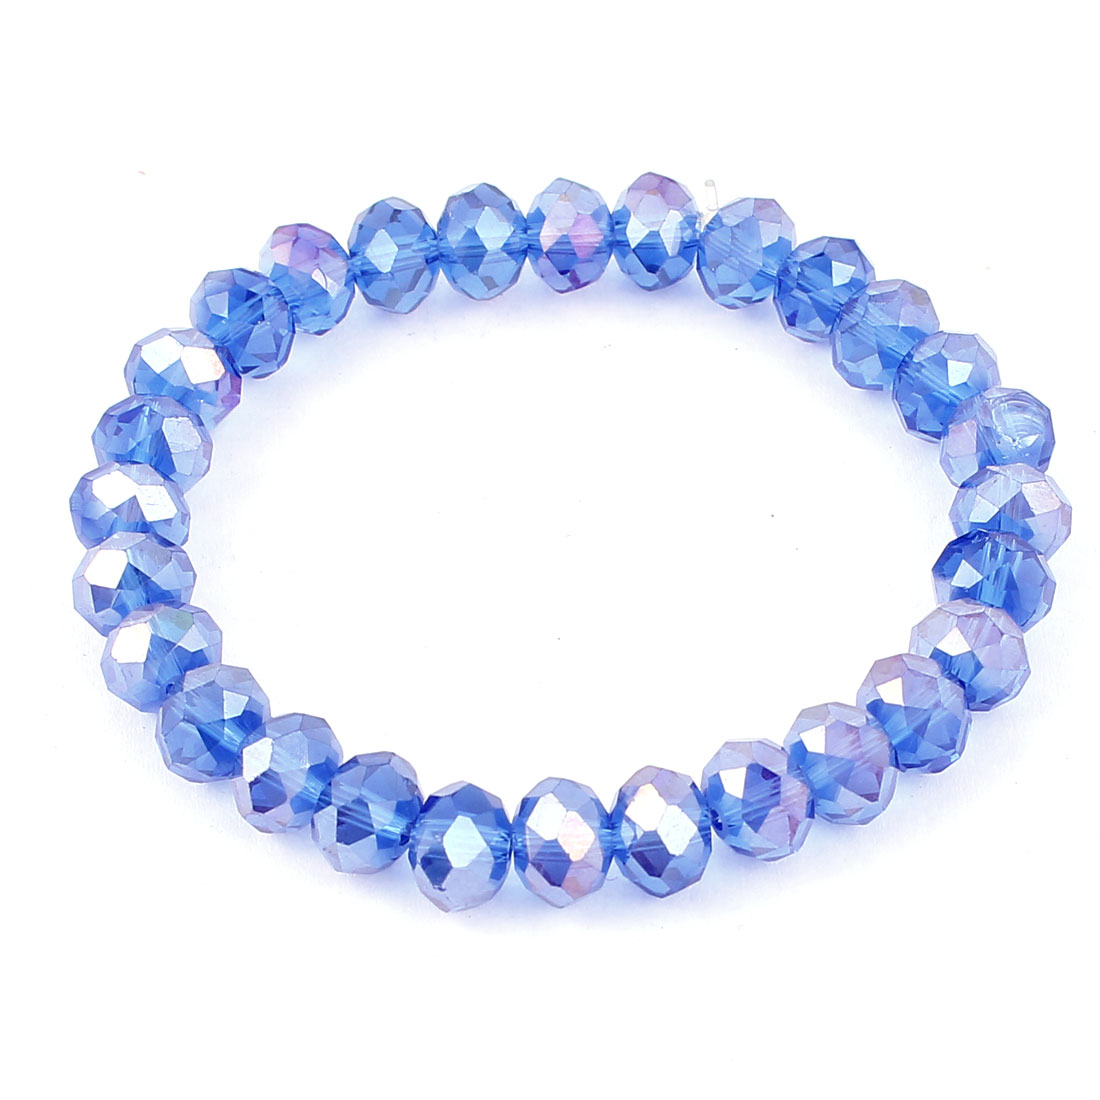 Blue Faceted Faux Crystal Stretchy Wrist Bracelet Bangle for Women